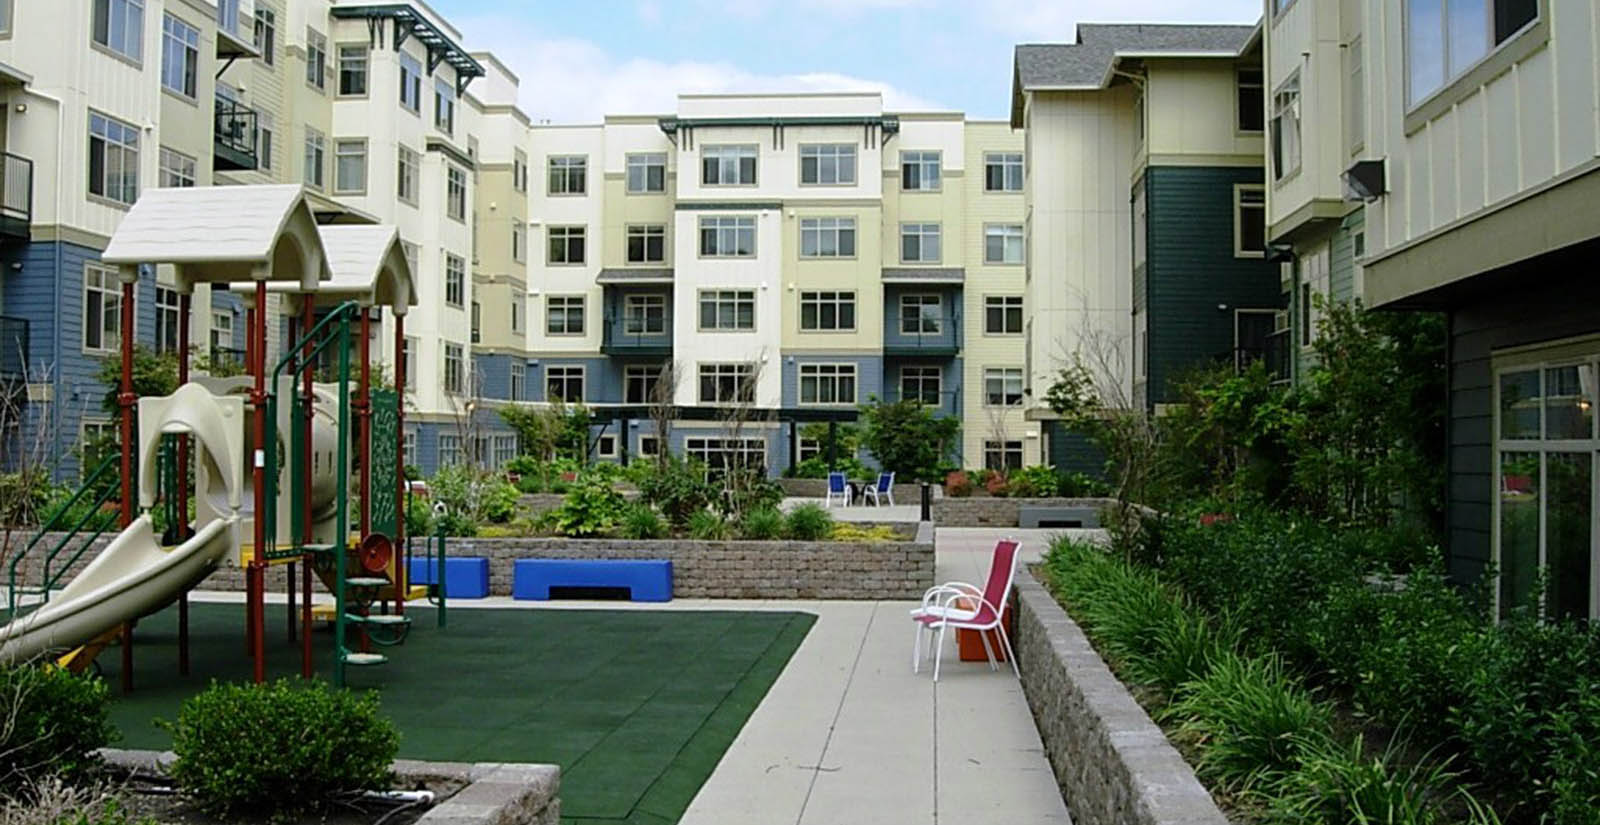 Apartments in Seattle have beautiful landscaping